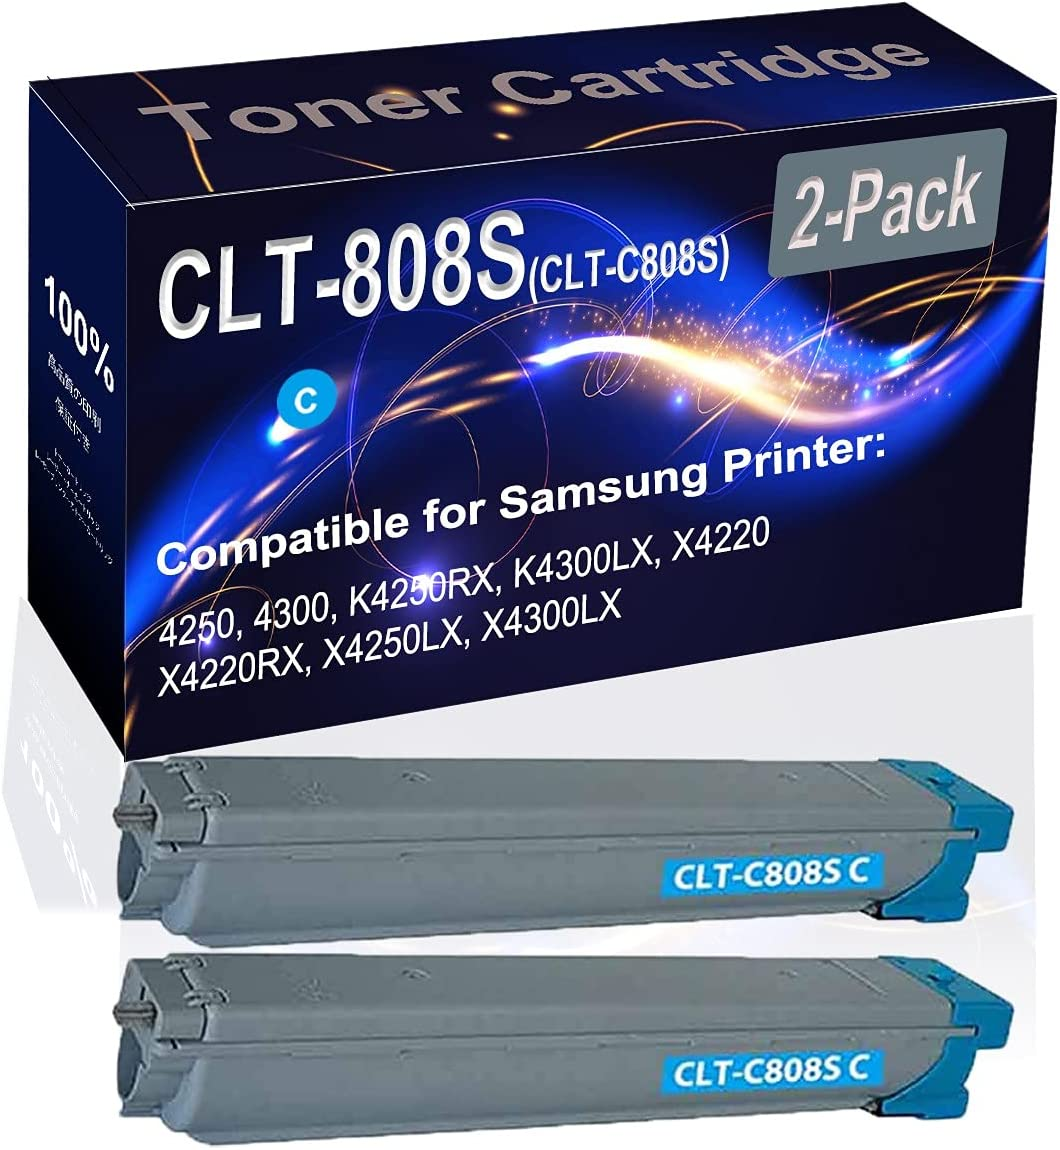 2-Pack (Cyan) Compatible K4250RX K4300LX Laser Printer Toner Cartridge (High Capacity) Replacement for Samsung CLT-808S (CLT-C808S) Printer Toner Cartridge